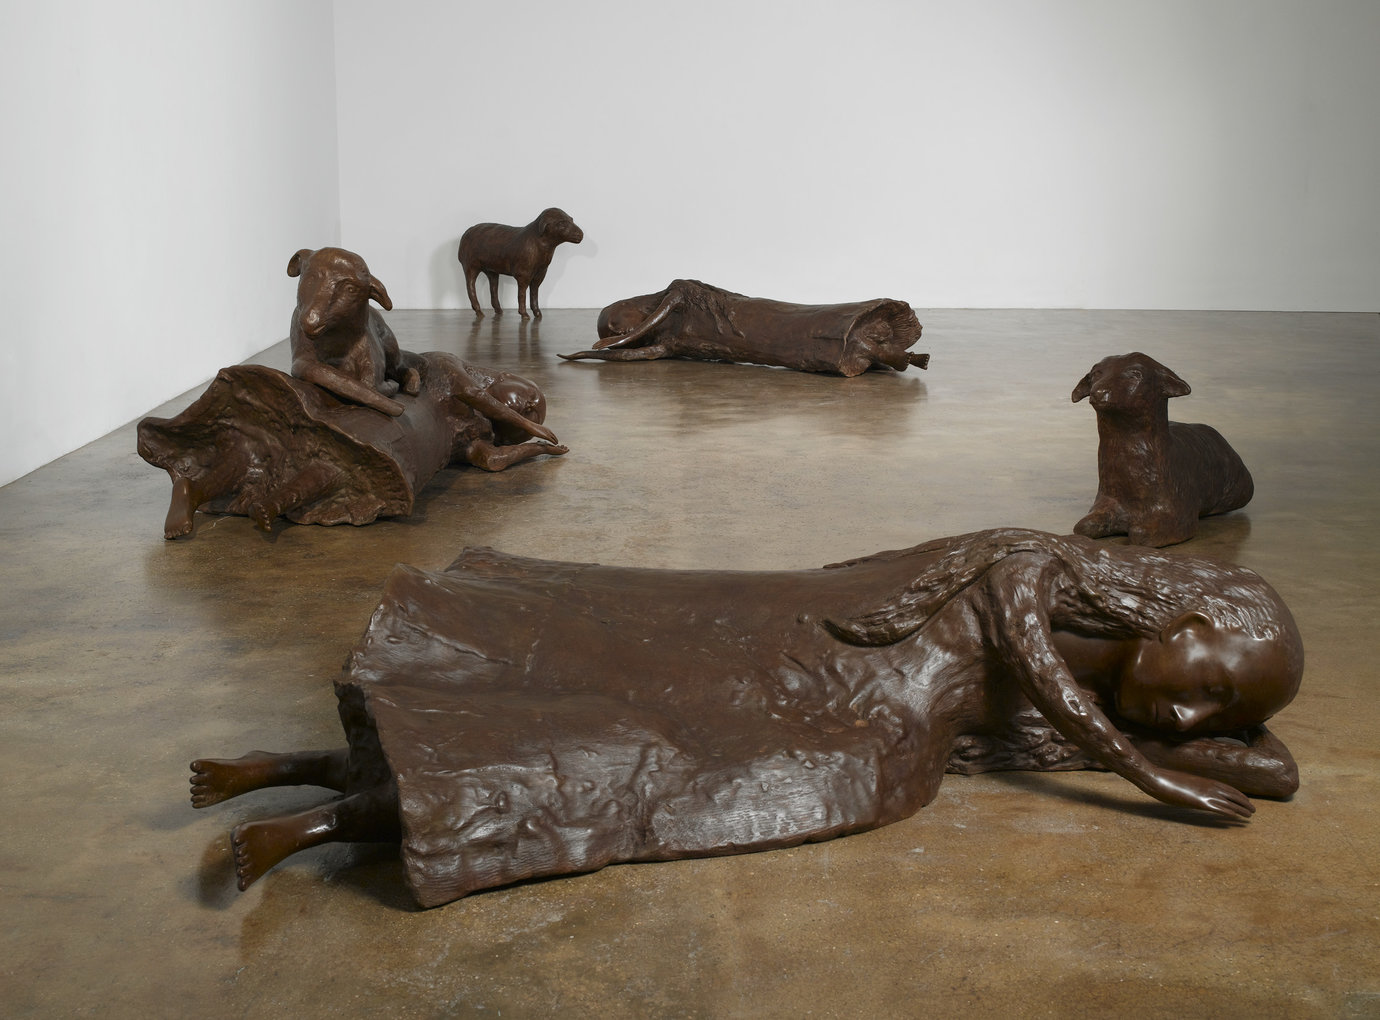 ", 2009. Bronze, overall installation dimensions variable&#x000A;30-1/2"" x 13"" x 42"" (77.5 cm x 33 cm x 106.7 cm), standing sheep&#x000A;22-1/2"" x 40"" x 15"" (57.2 cm x 101.6 cm x 38.1 cm), resting sheep&#x000A;34"" x 82"" x 39"" (86.4 cm x 208.3 cm x 99.1 cm), woman with sheep&#x000A;17-3/4"" x 84"" ."